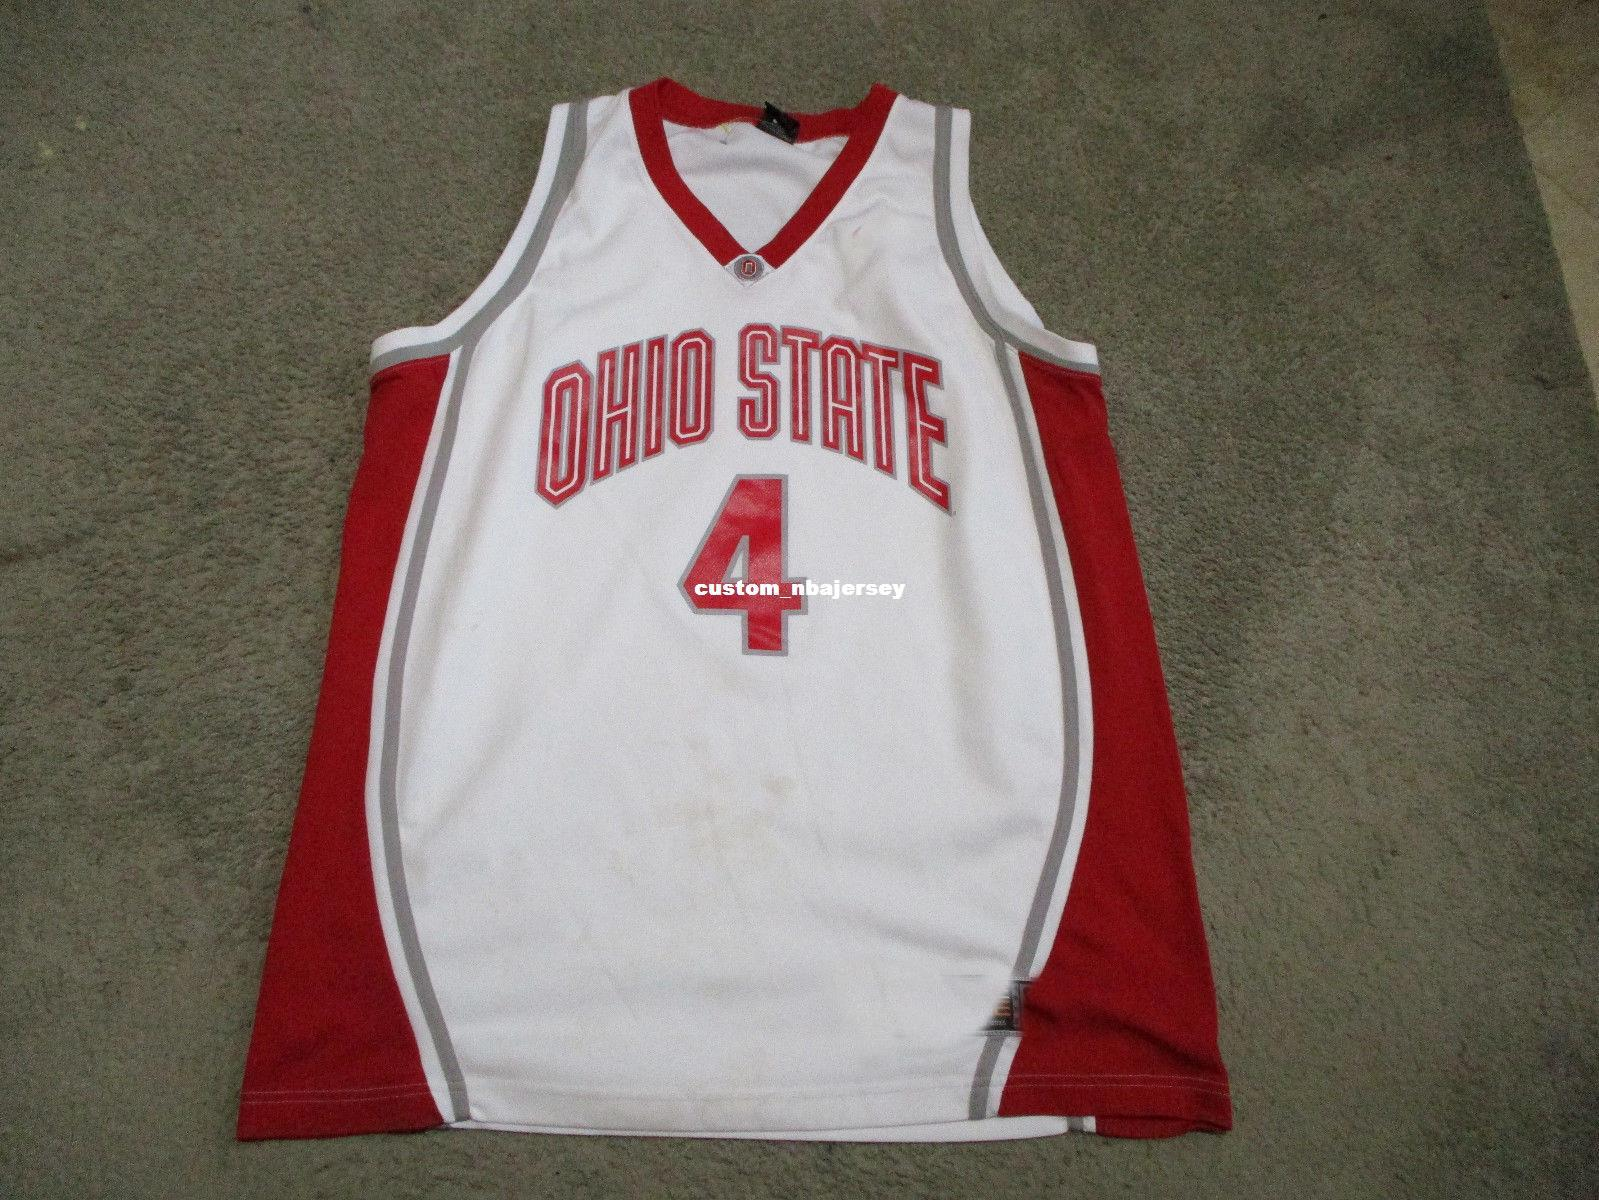 e2a467e68 2019 Cheap Custom VINTAGE Ohio State Buckeyes Basketball Jersey OSU  Stitched Customize Any Number Name MEN WOMEN YOUTH XS 5XL From  Custom nbajersey